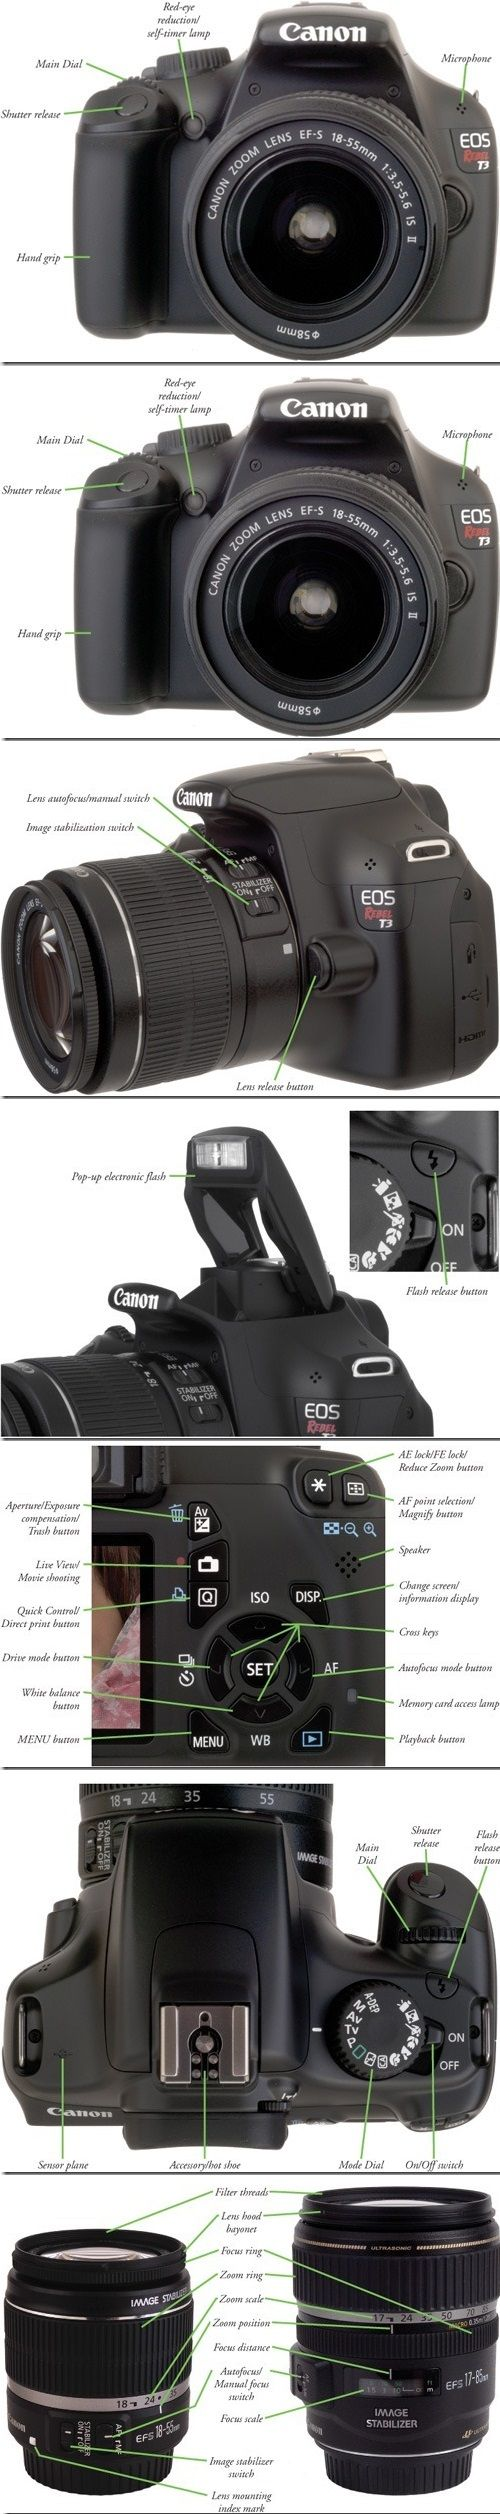 canon eos 1100d guide wanted a dlsr camera for so long also to rh pinterest com canon 1100d guidebook canon 1100d manuel